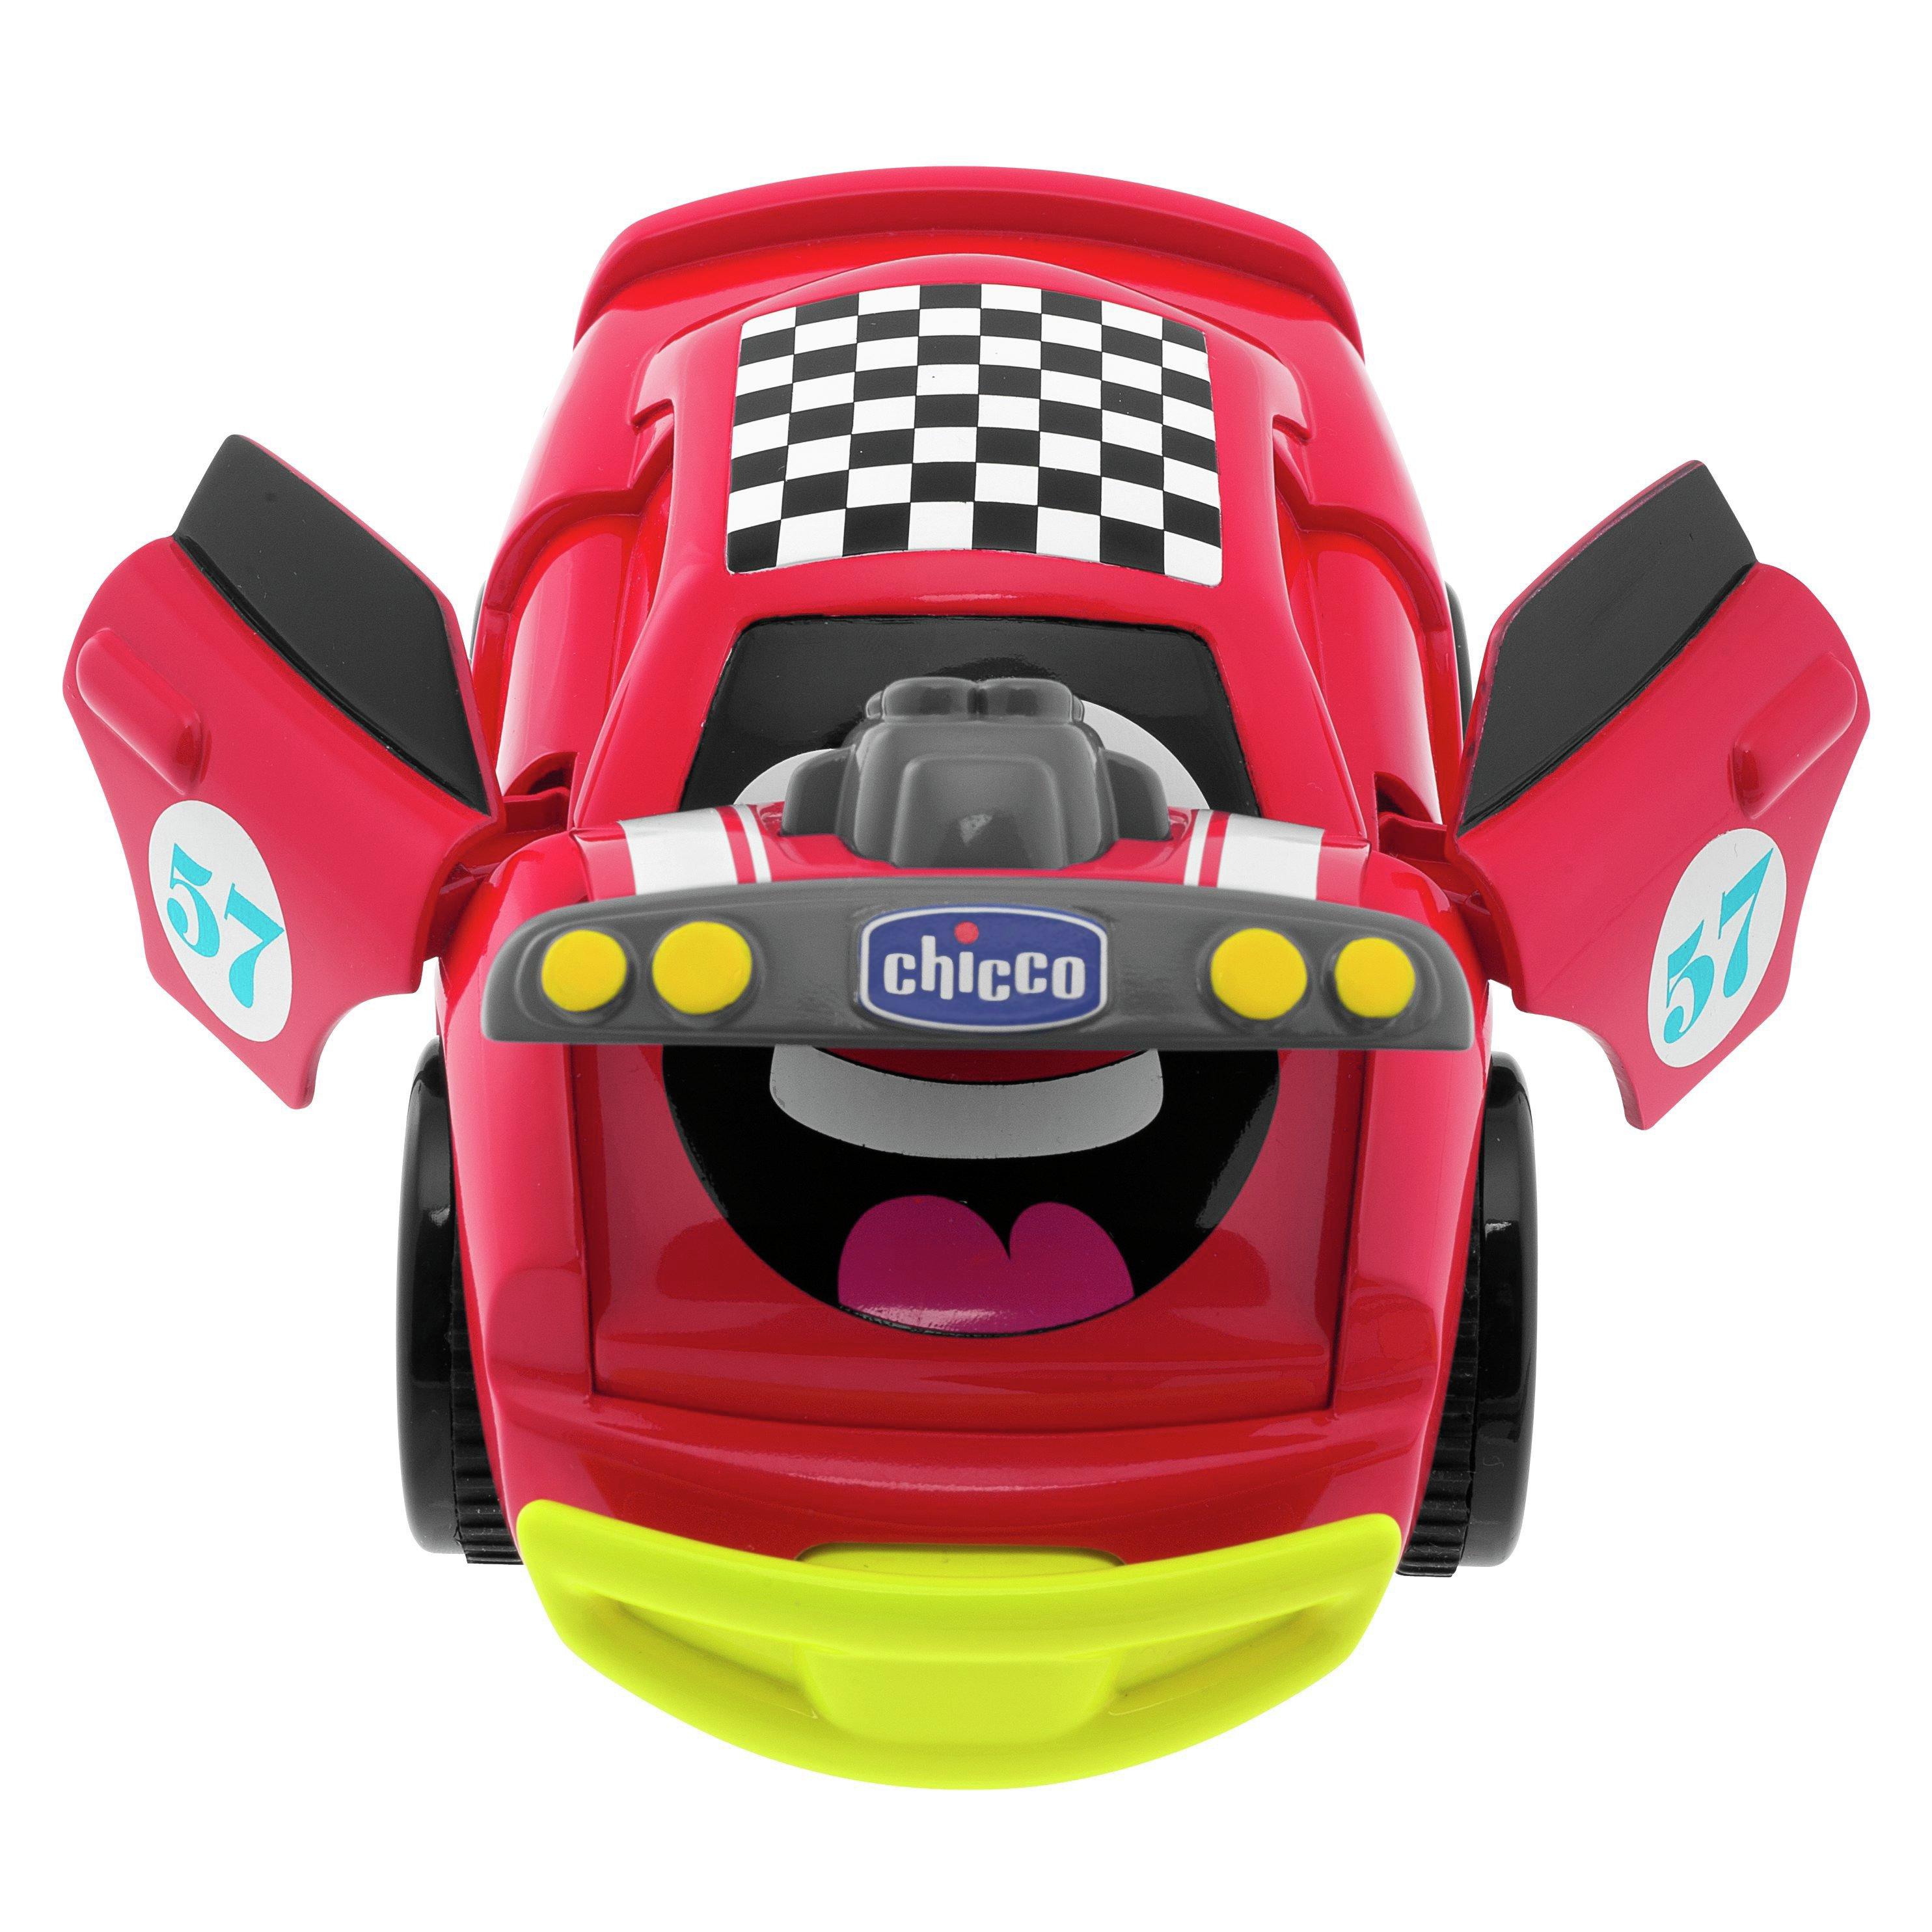 Image of Chicco Turbo Touch Crash - Derby Red.